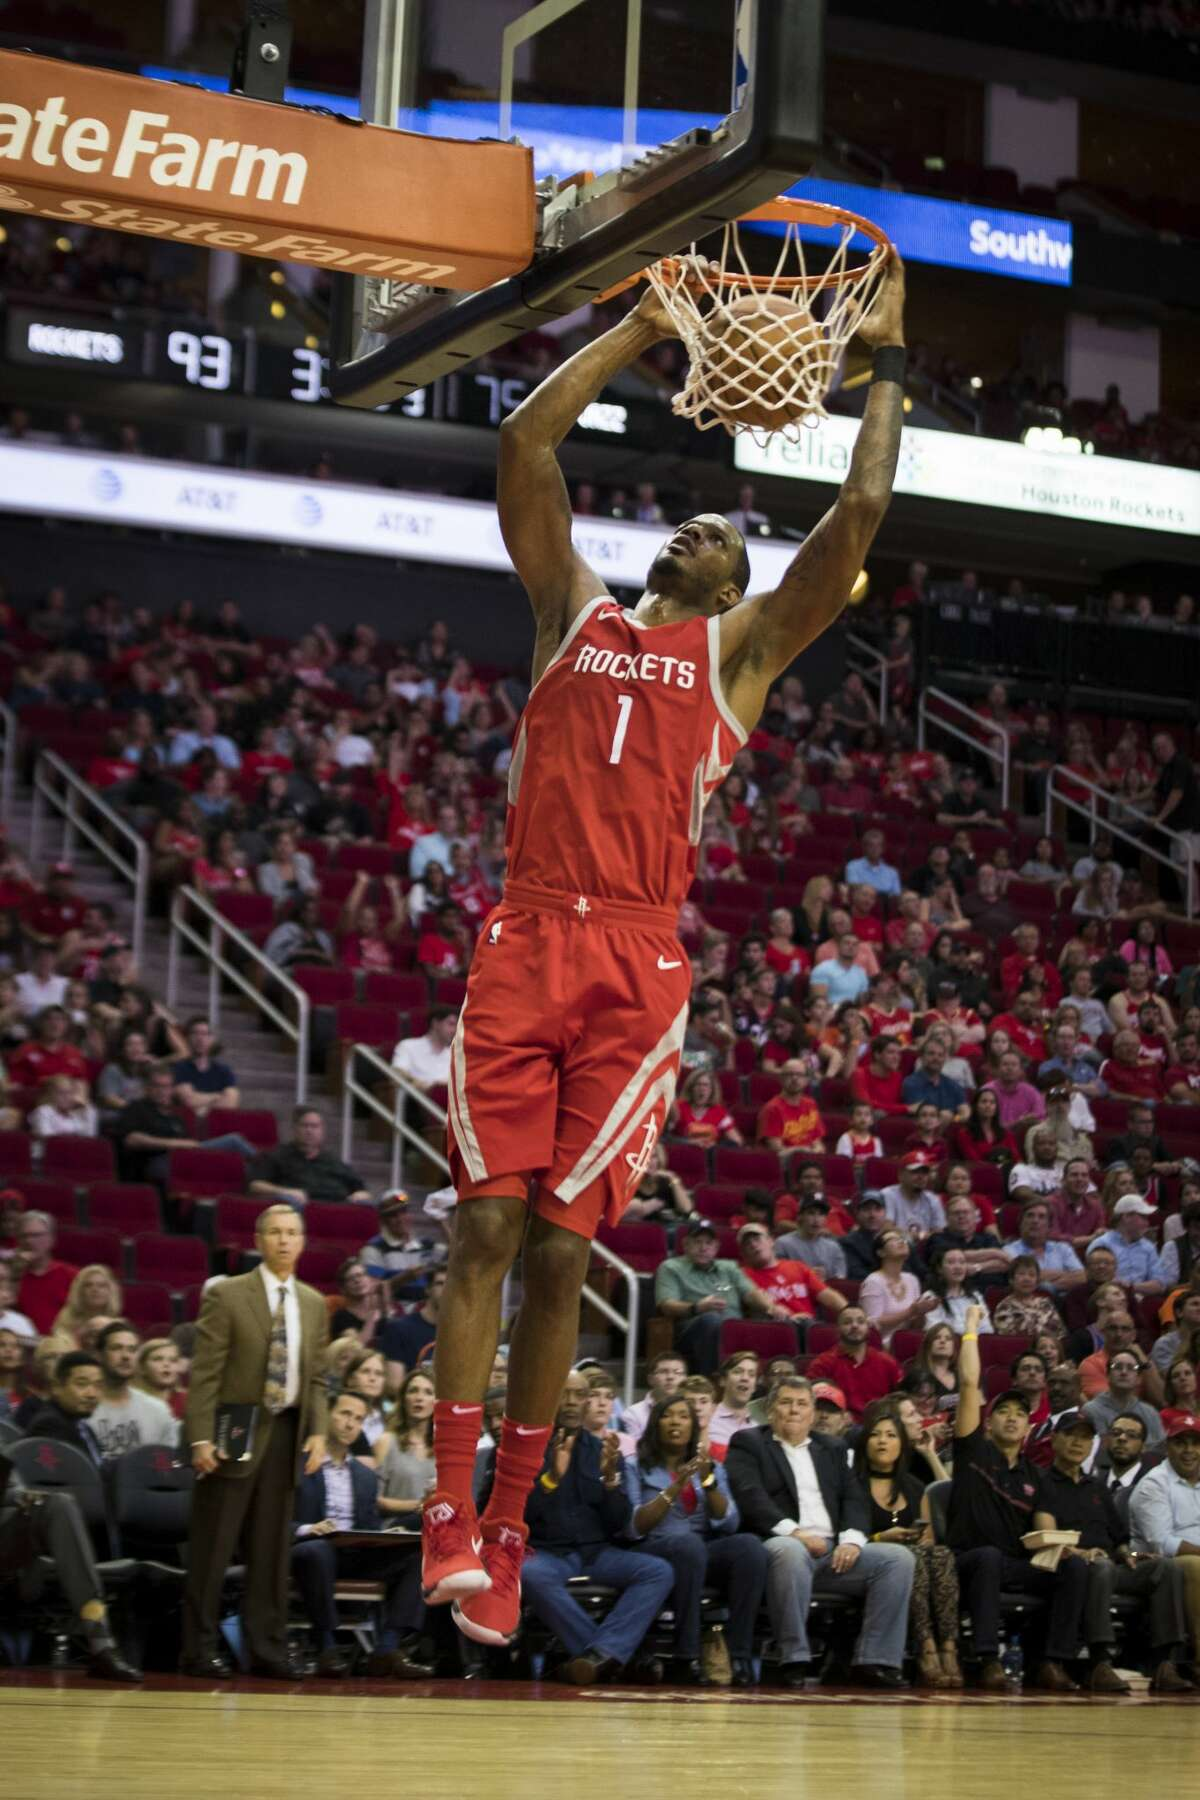 Rockets forward Trevor Ariza is averaging 14.3 points per game in his last eight games - a big improvement on his first six games.